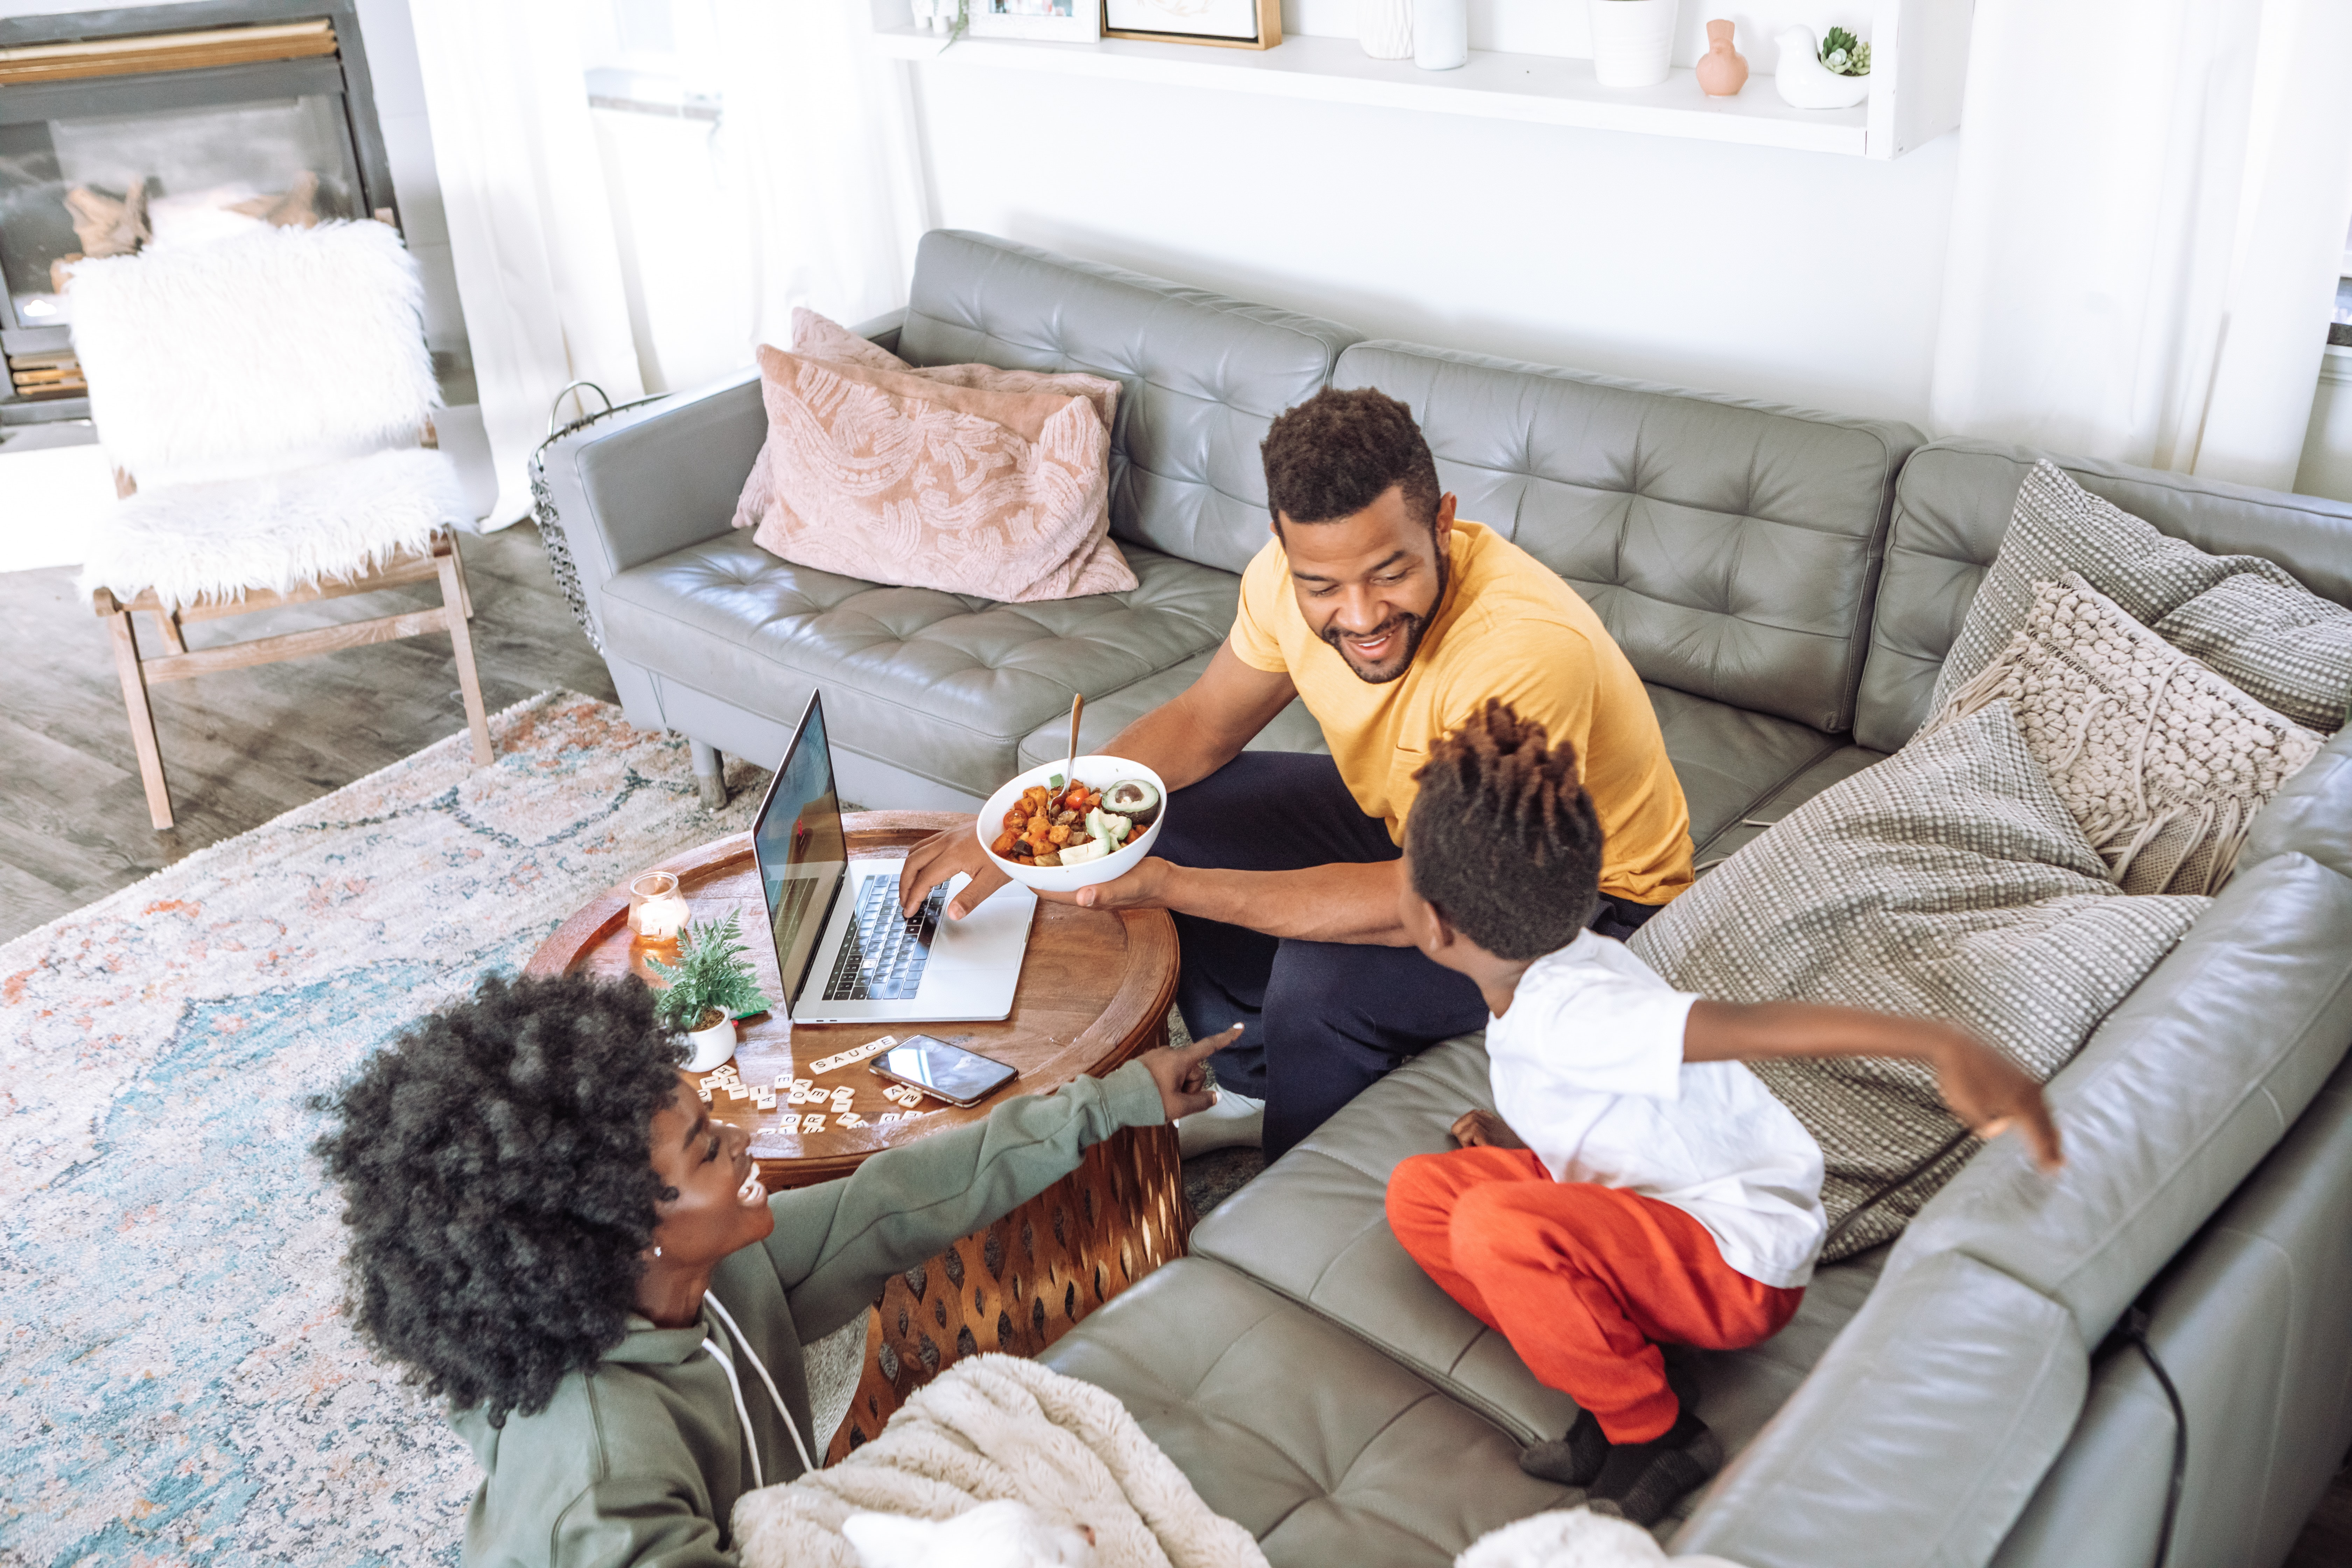 Three Black people sitting in a living room. One of the people is a child crouched on a couch. The two older people are engaging with the child.